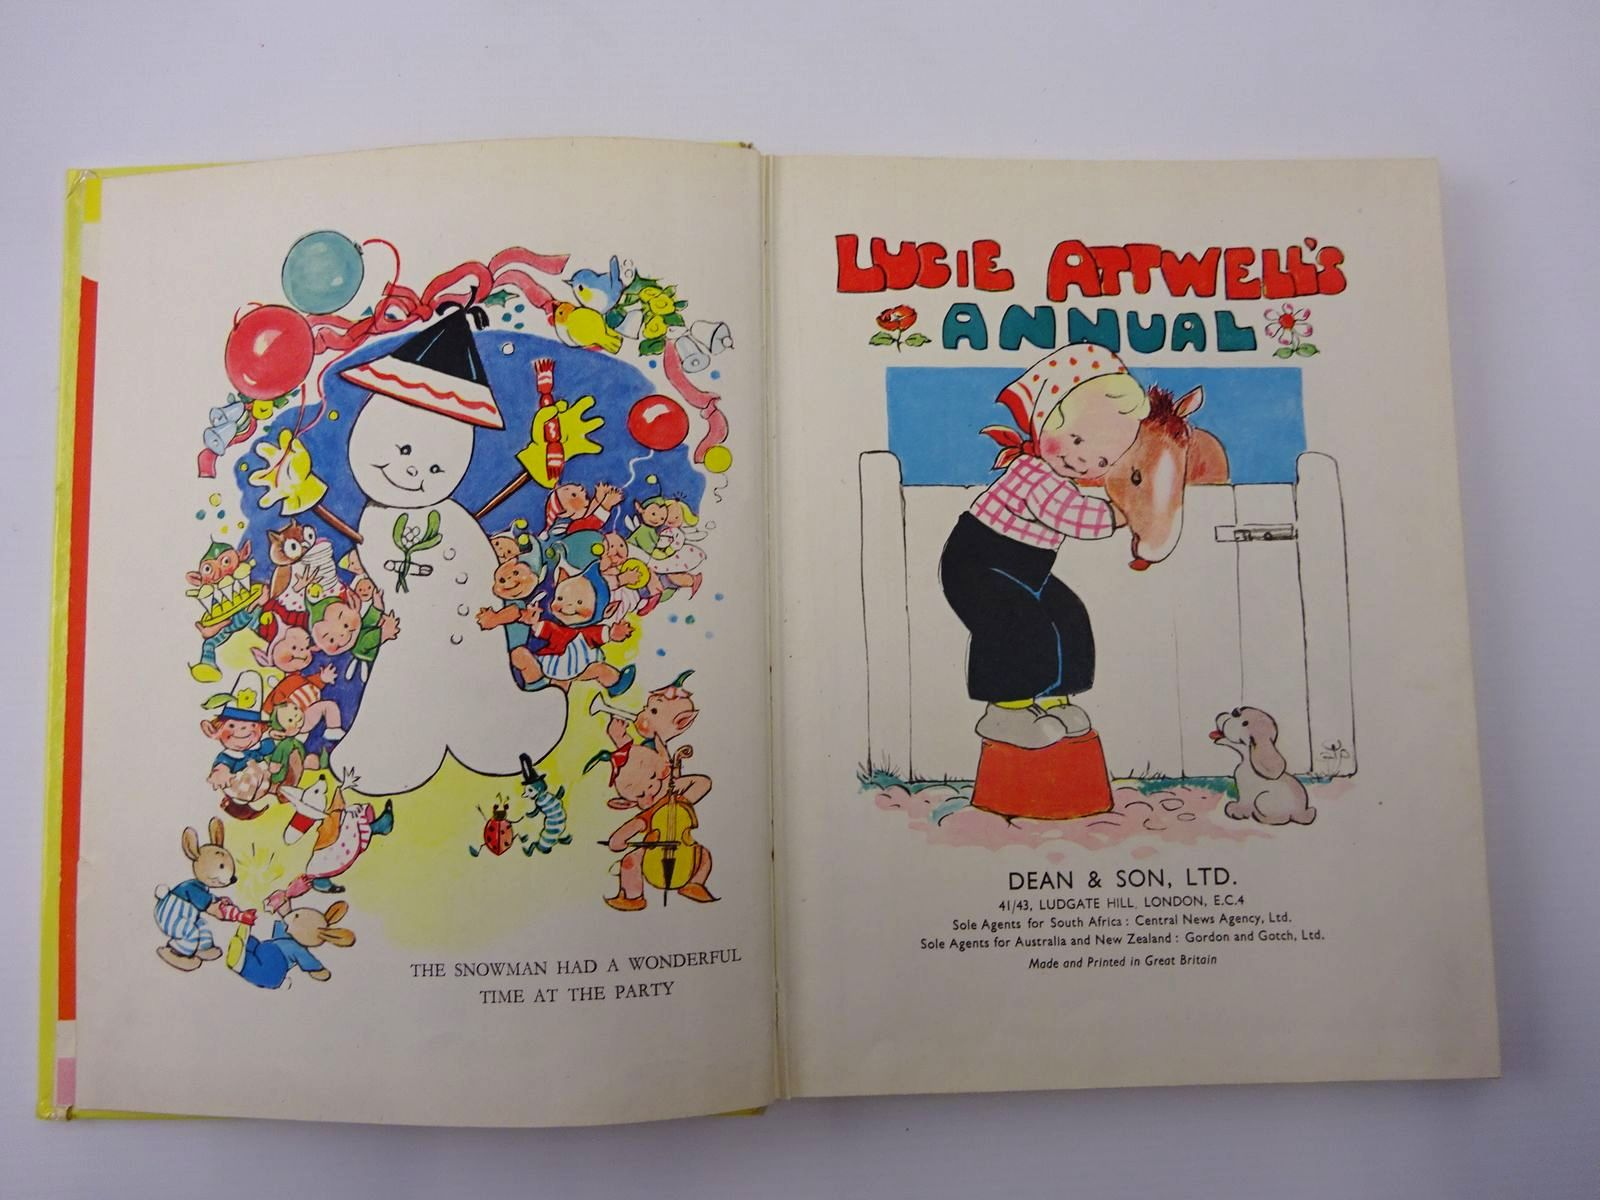 Photo of LUCIE ATTWELL'S ANNUAL 1953 illustrated by Attwell, Mabel Lucie published by Dean & Son Ltd. (STOCK CODE: 2129431)  for sale by Stella & Rose's Books